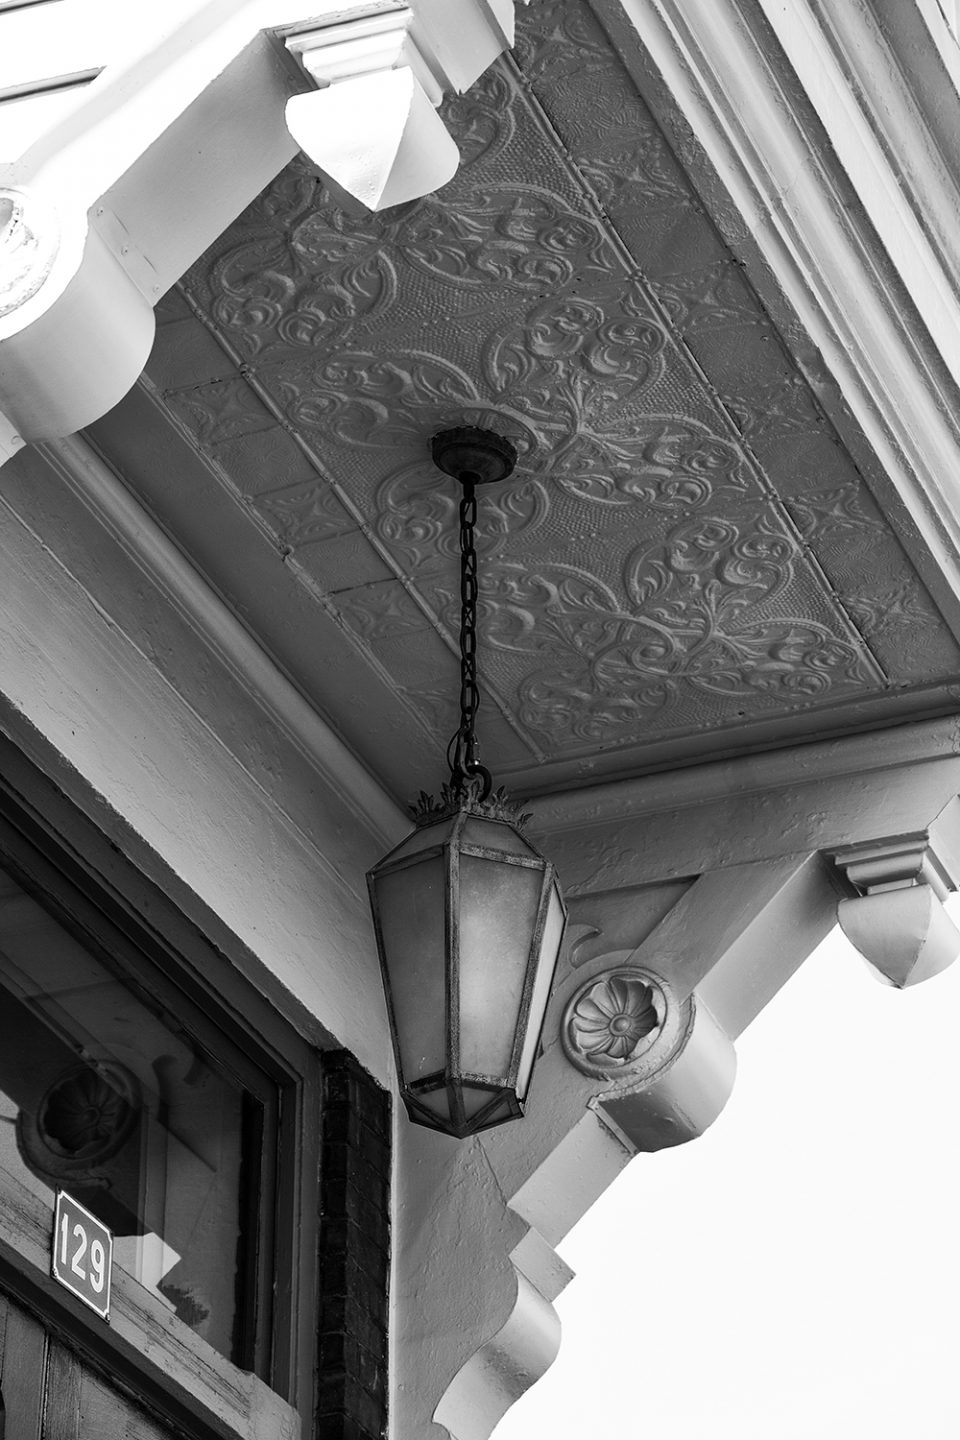 Elegant historic architectural details from a bygone era in Hopkinsville. Black and white photograph by Keith Dotson.